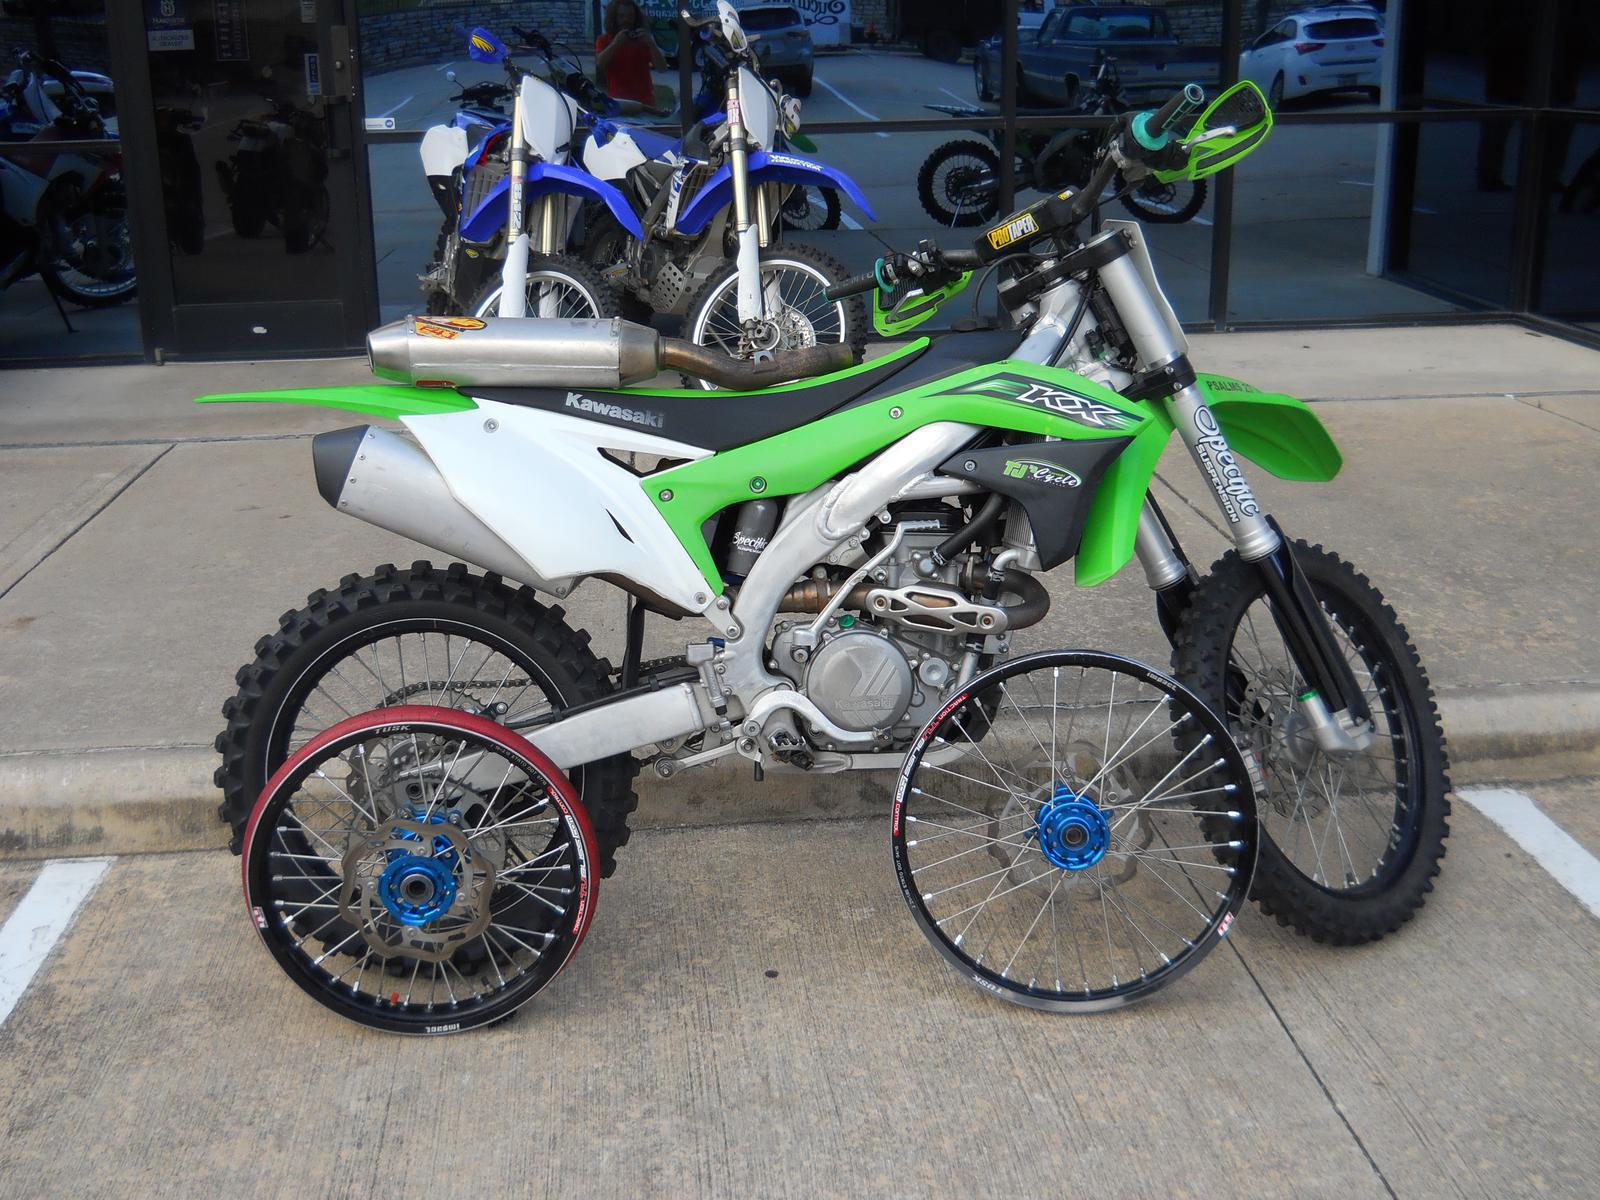 2016 Kawasaki Kx450f For Sale In Austin Tx Tjs Cycle Sales